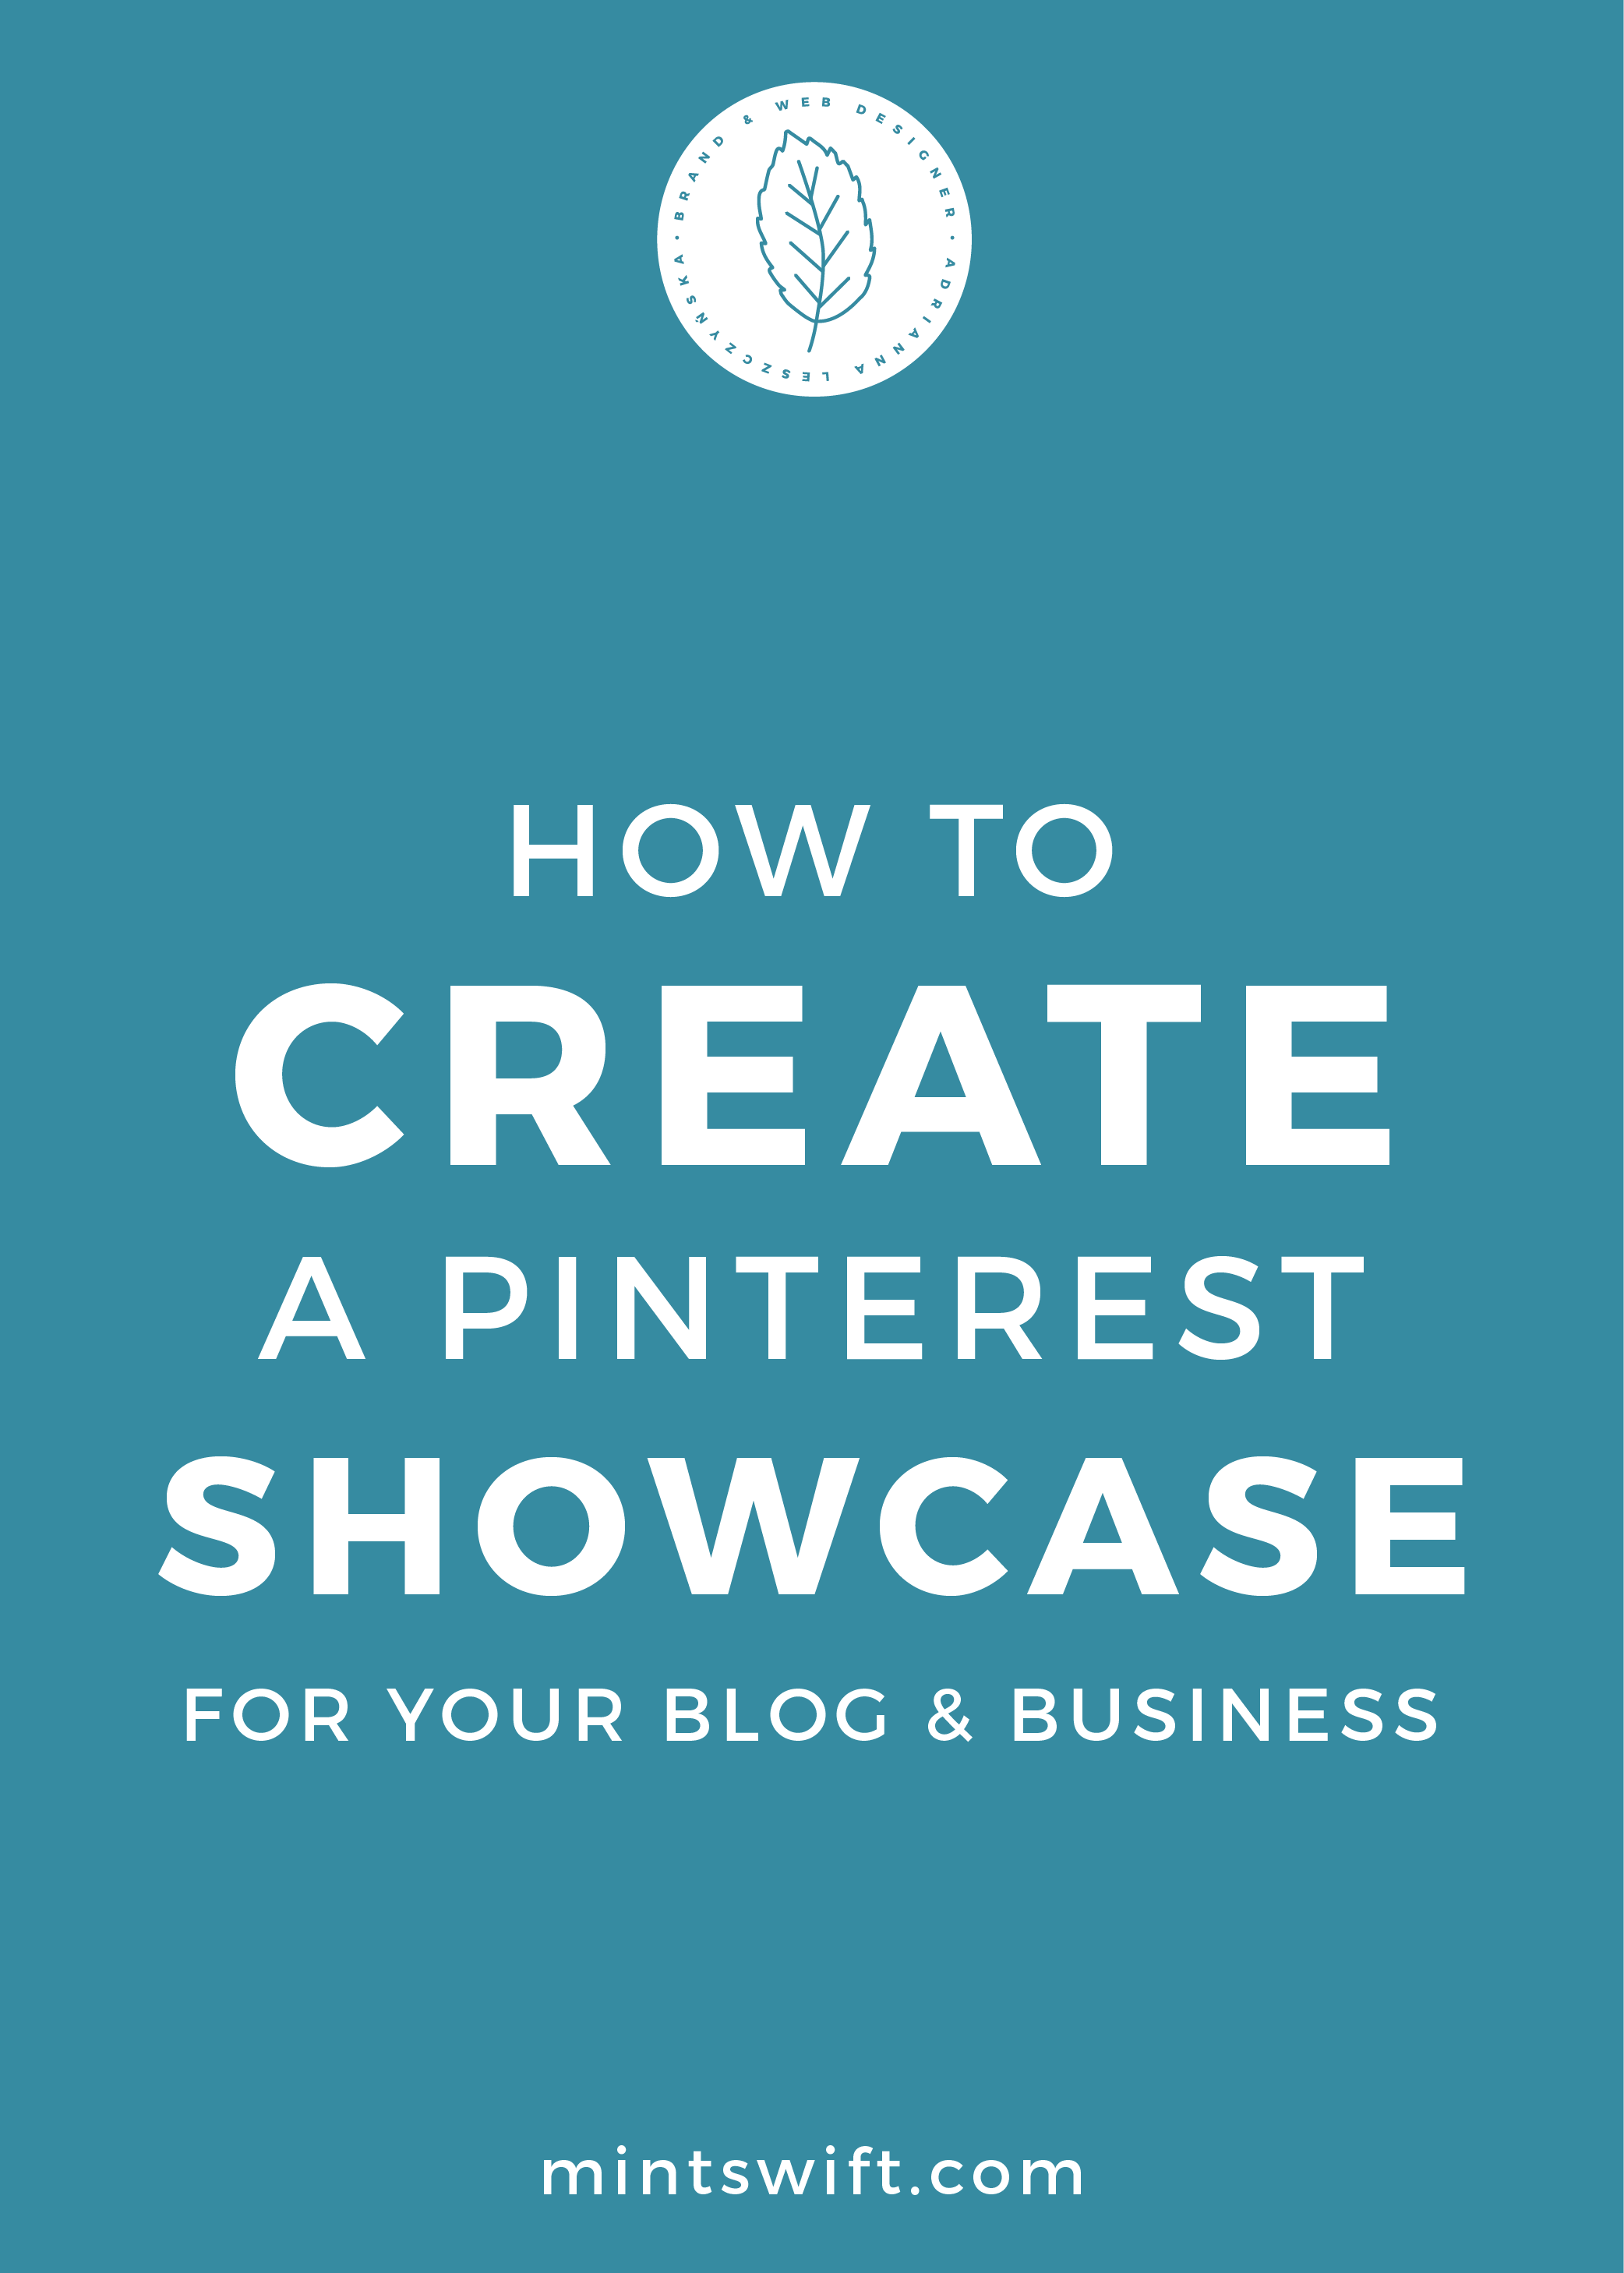 How to Create a Pinterest Showcase for Your Blog & Business - MintSwift